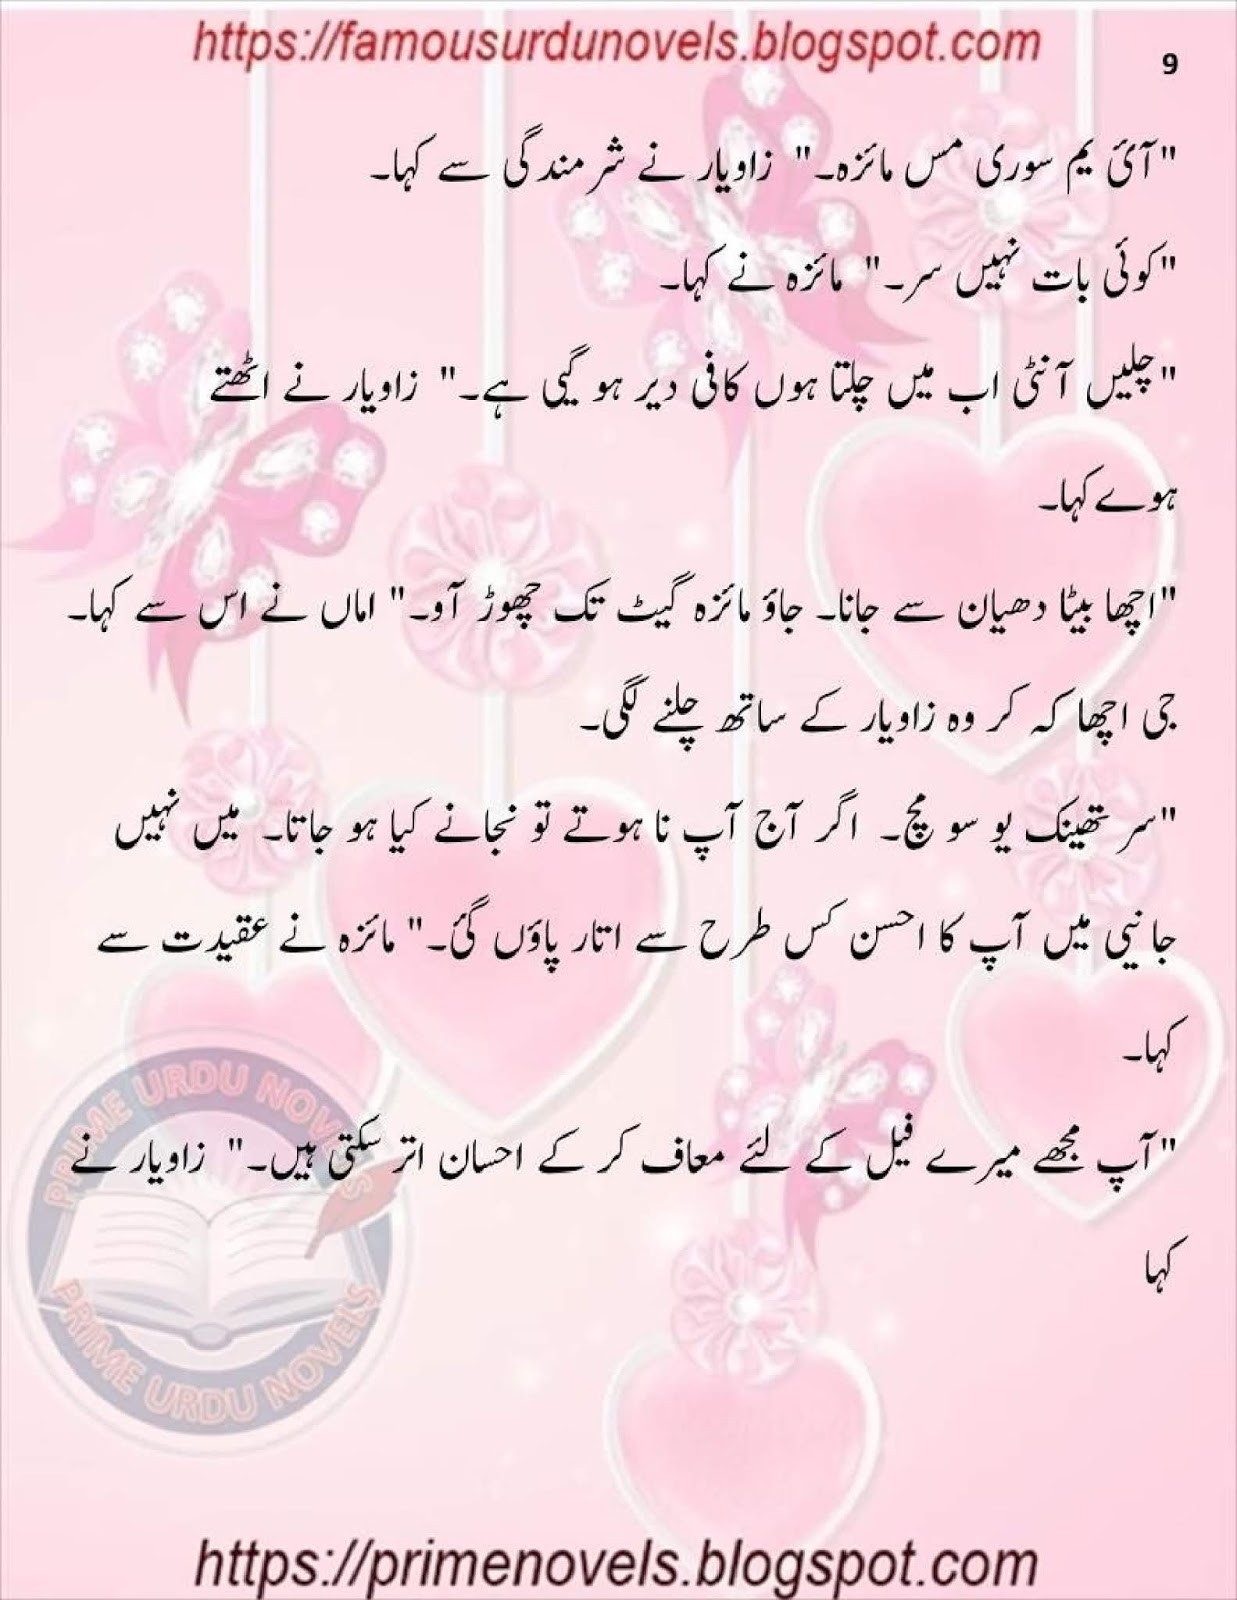 Tu He Meri Junooniyat By Meerab Fatima Kidnapping Based Novel